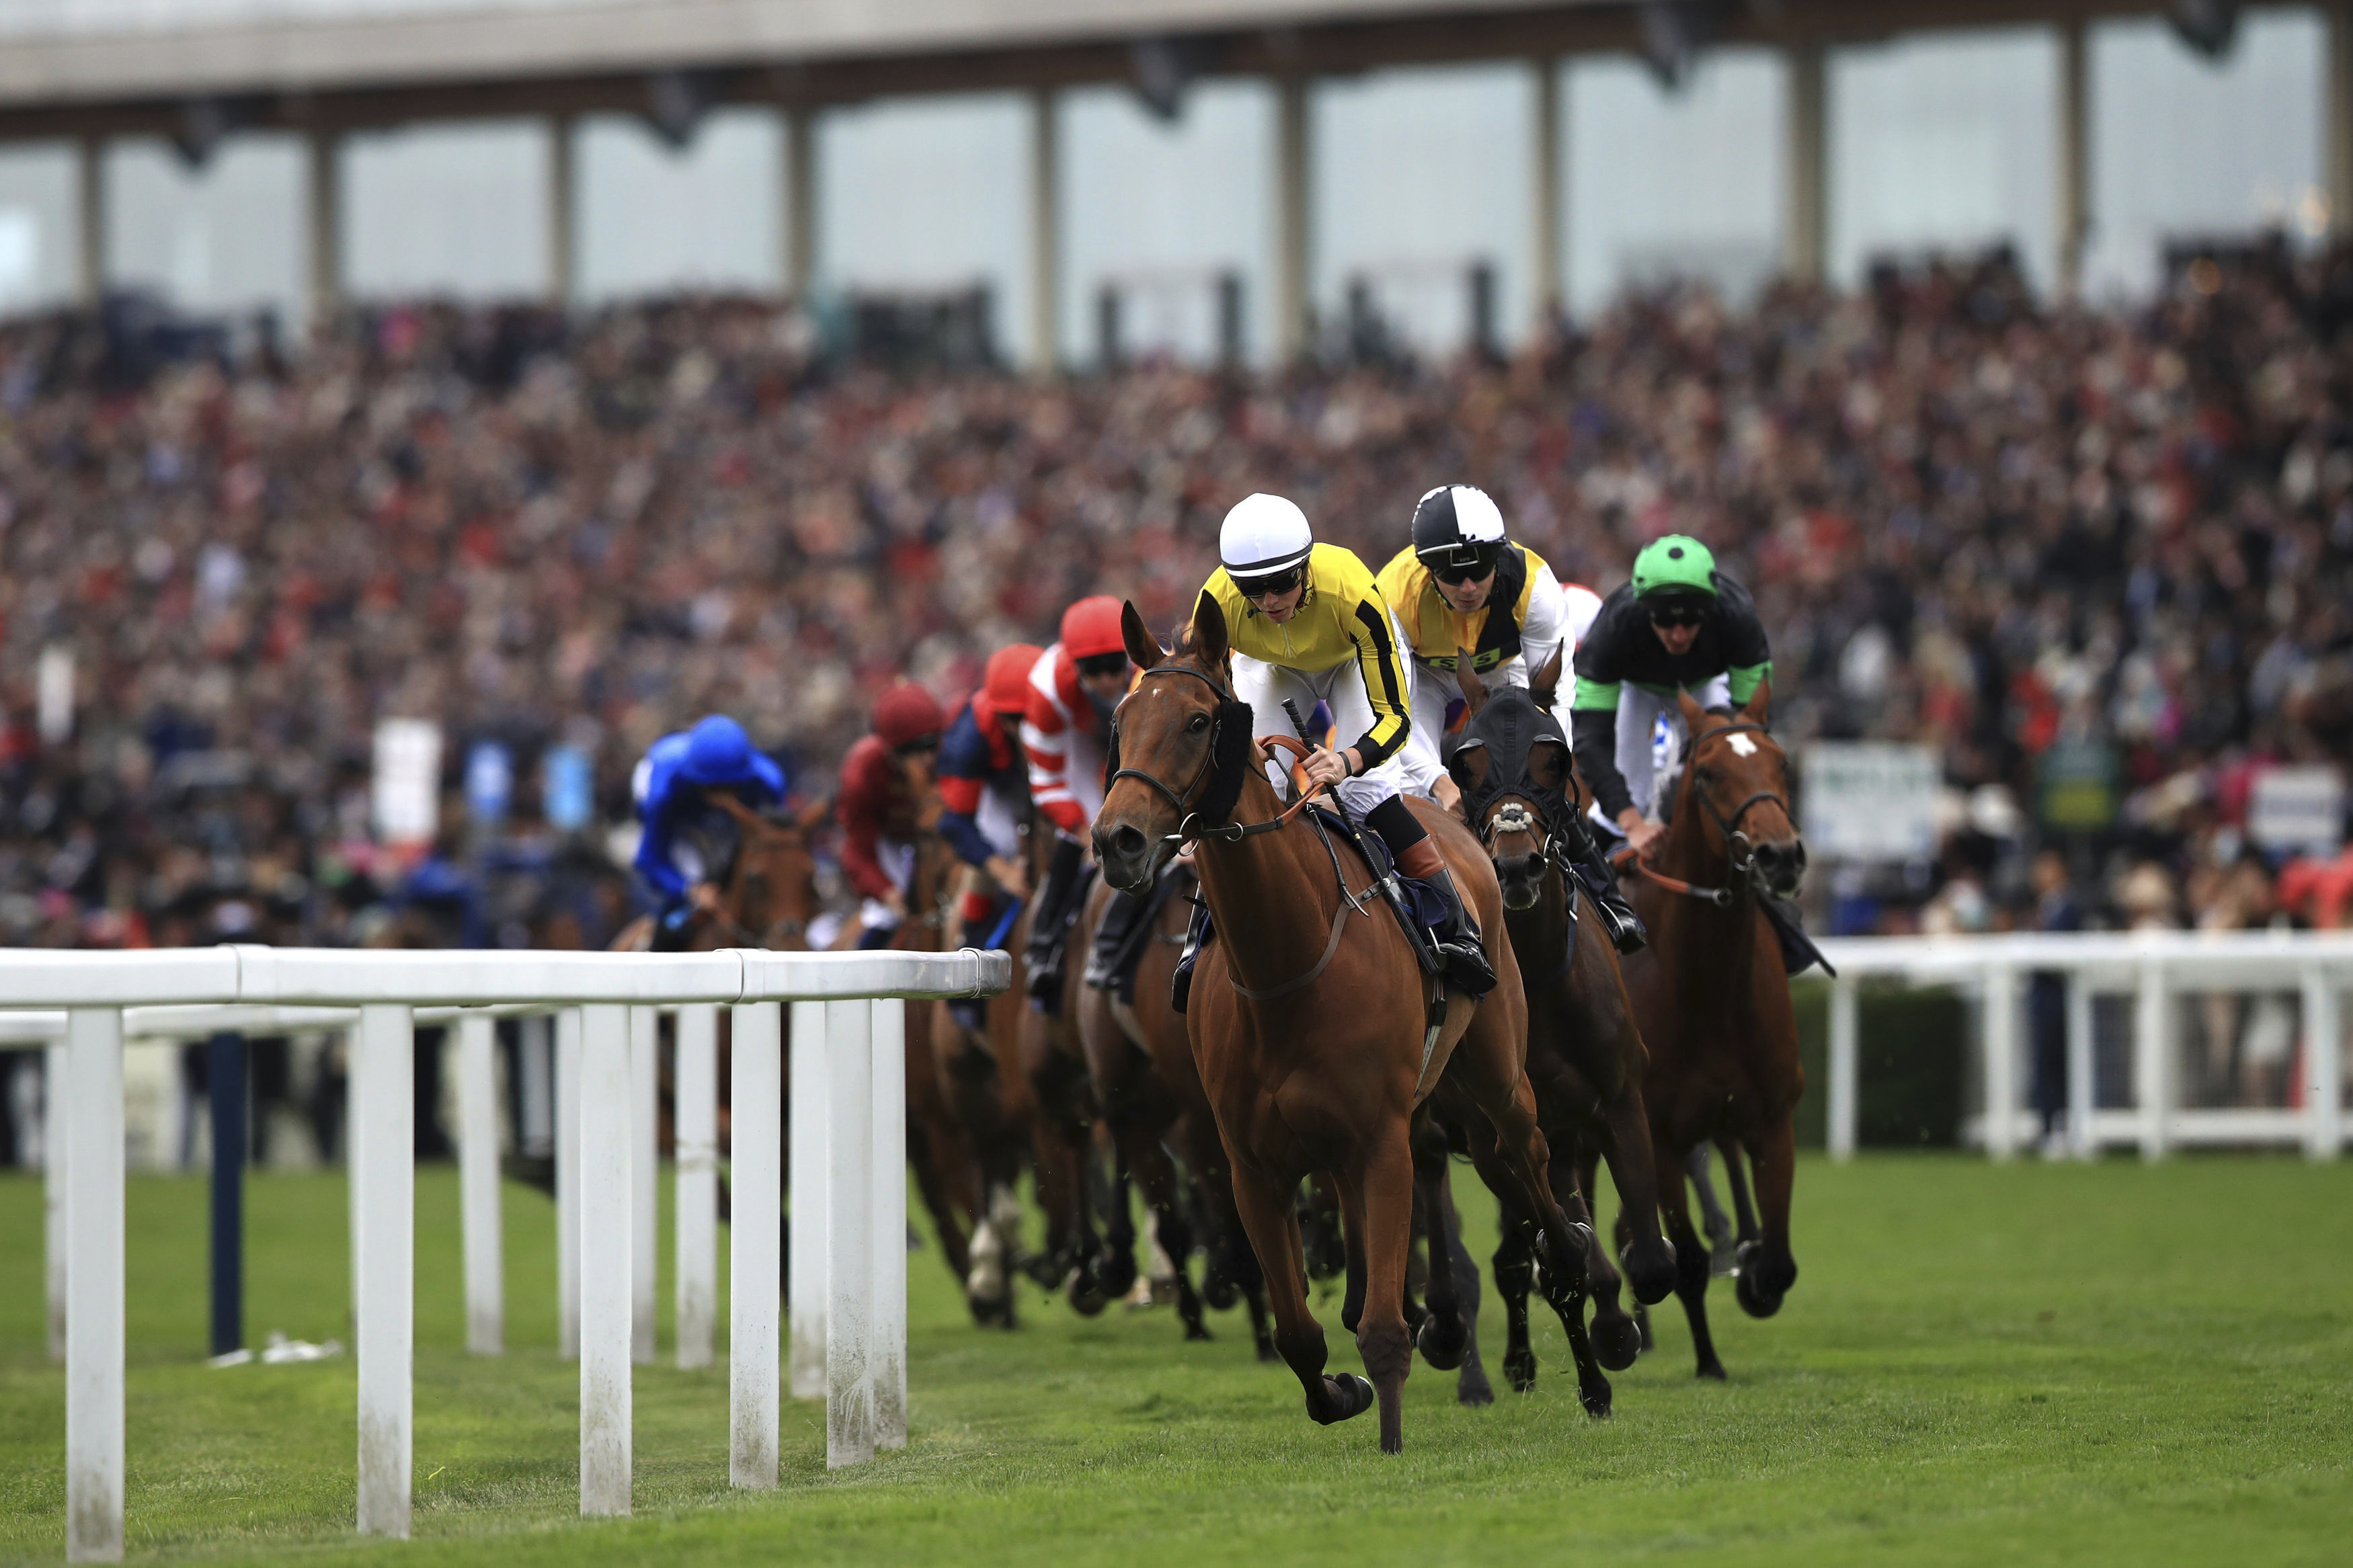 Big Orange ridden by Jockey James Doyle leads the way to winning the Gold Cup  during day three of Royal Ascot at Ascot Racecourse, in Ascot, England, Thursday June 22, 2017. (John Walton/PA via AP)